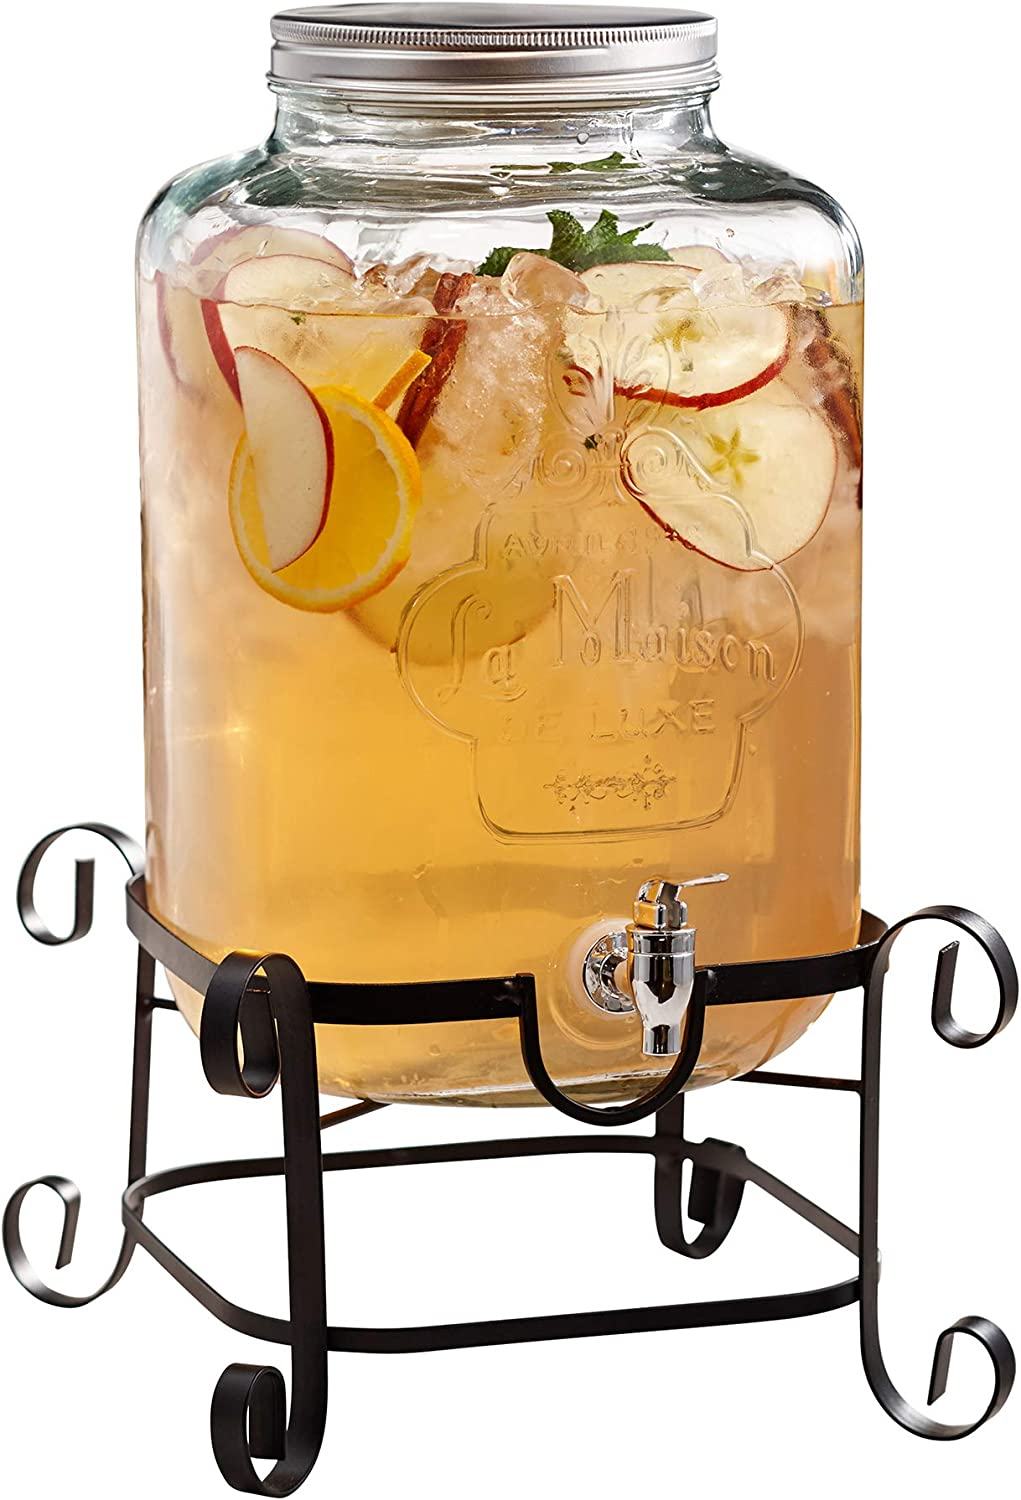 Style Setter 210262-GB Beverage Dispenser with Stand Cold Drink with 3 Gallon Capacity Glass Jug and Leak-Proof Acrylic Spigot in Gift Box for Parties, Weddings, 11.5 x 18, Clear